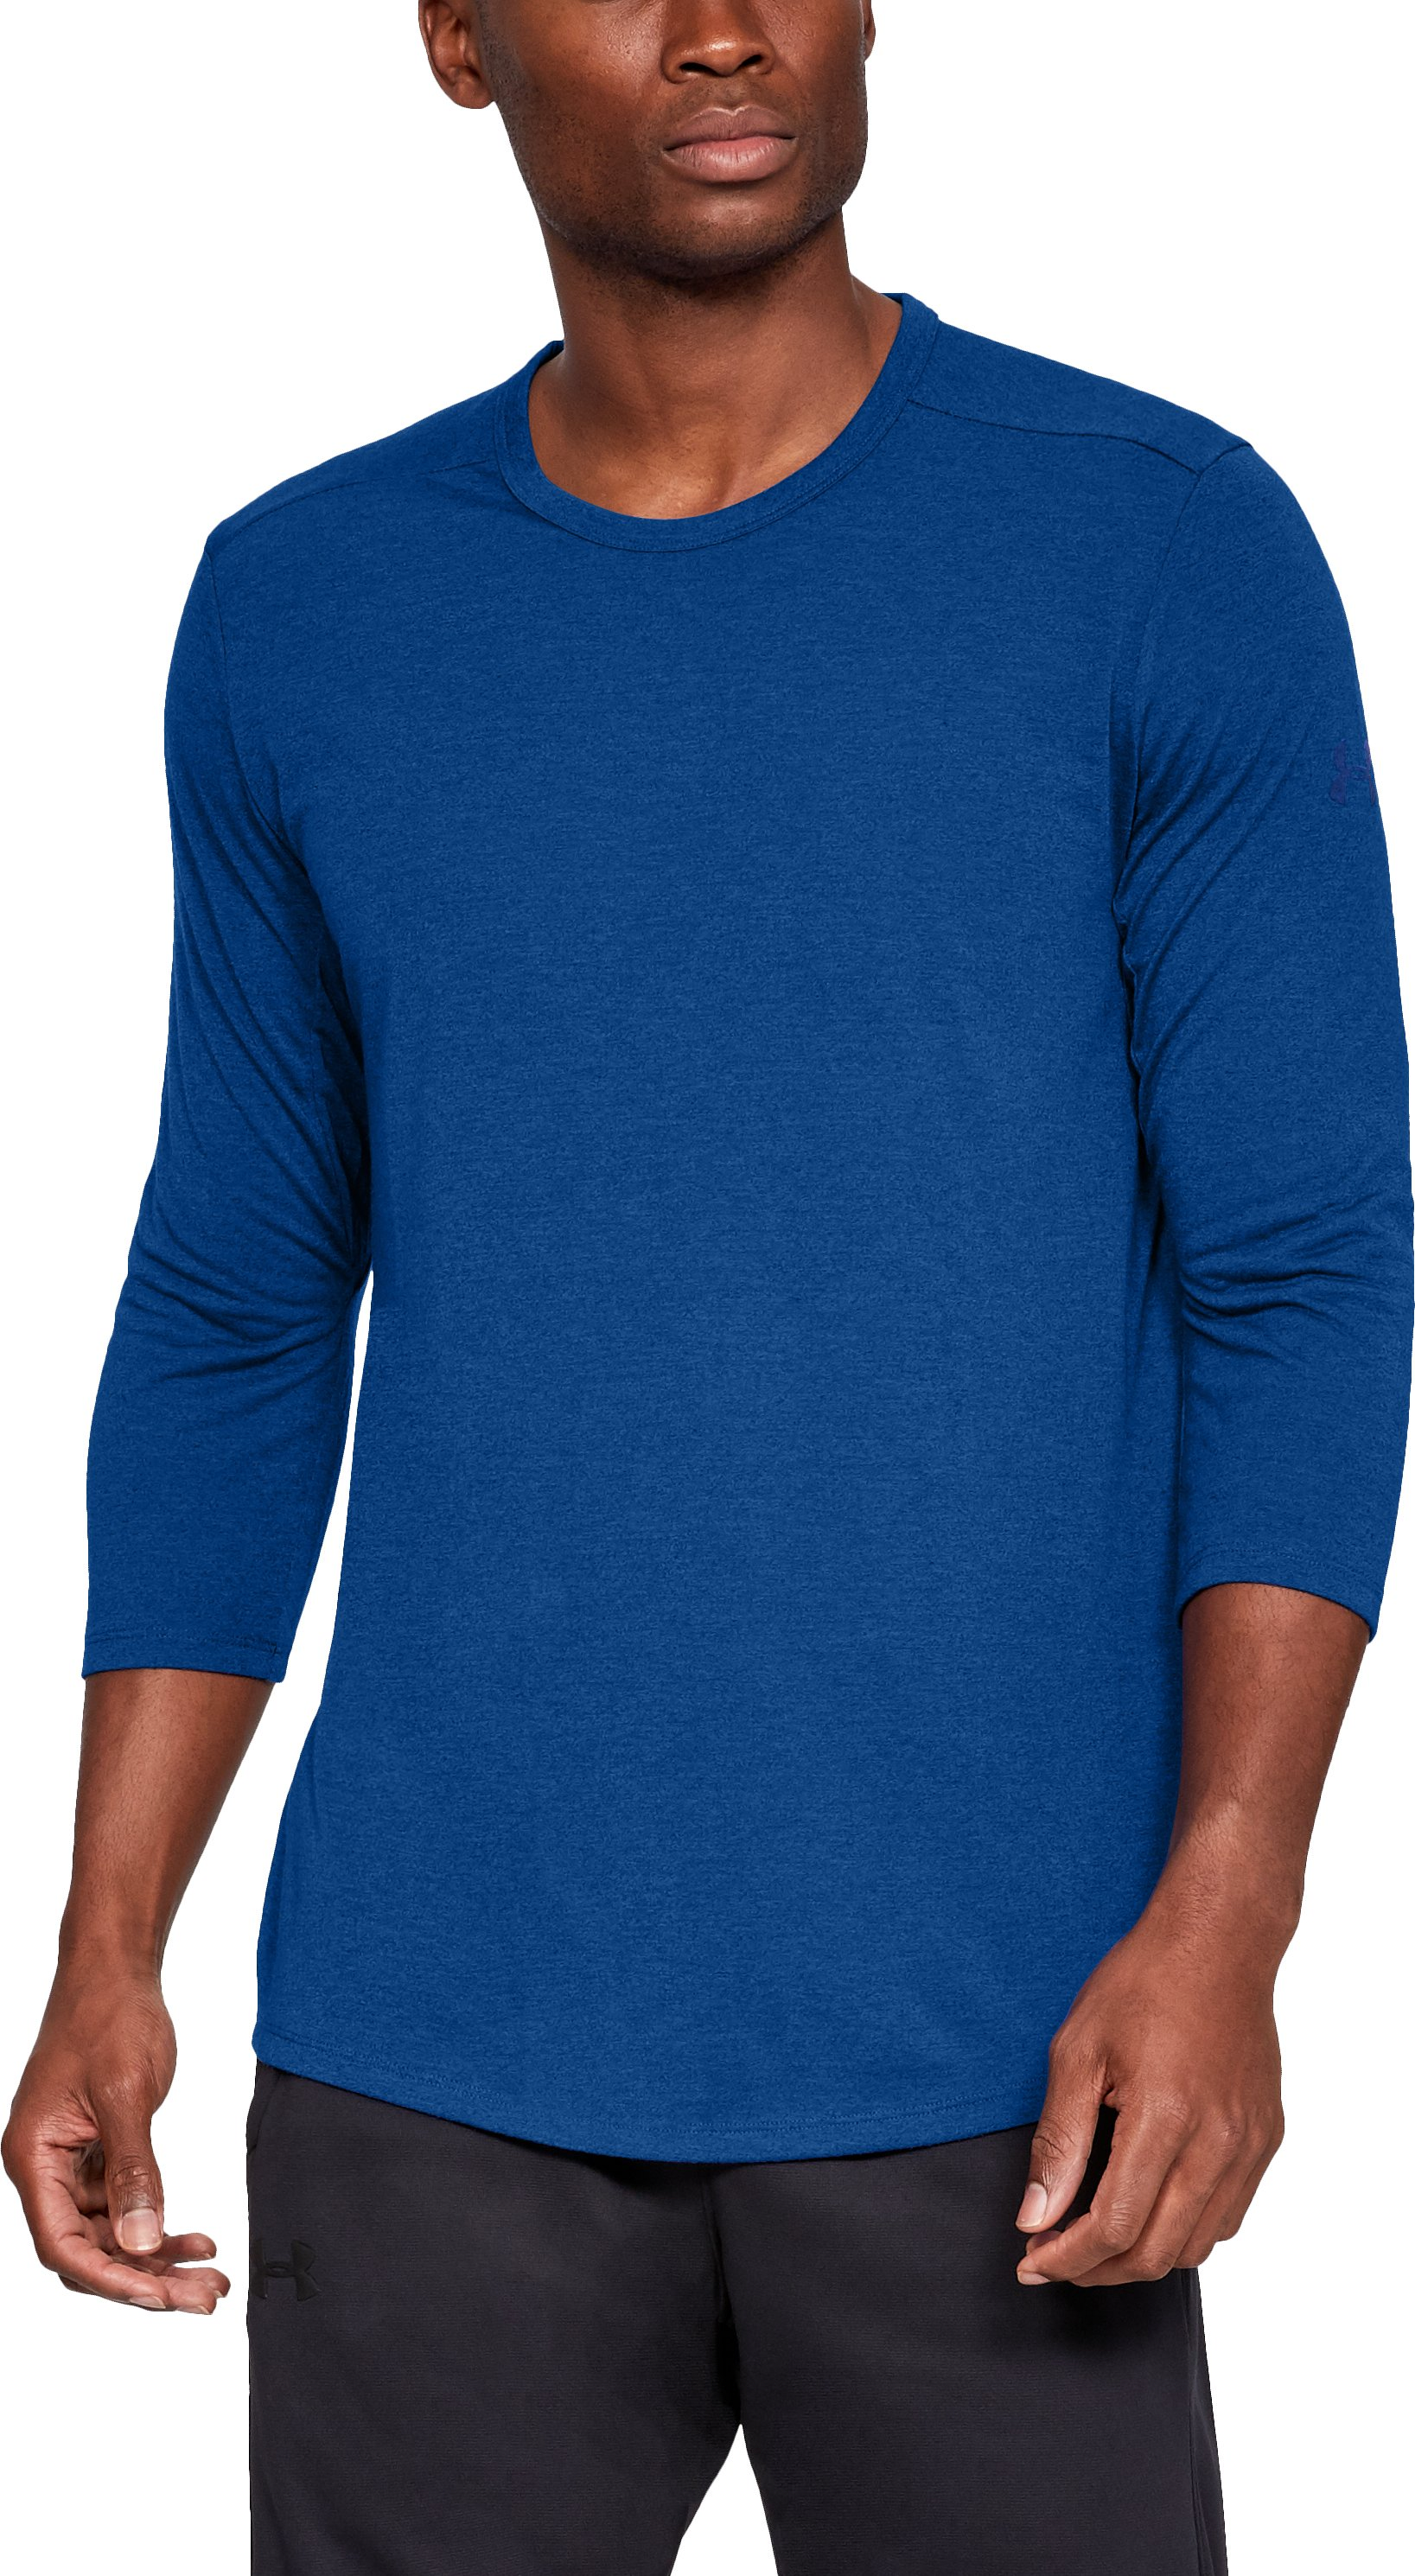 Threadborne 3/4 Sleeve, Royal, zoomed